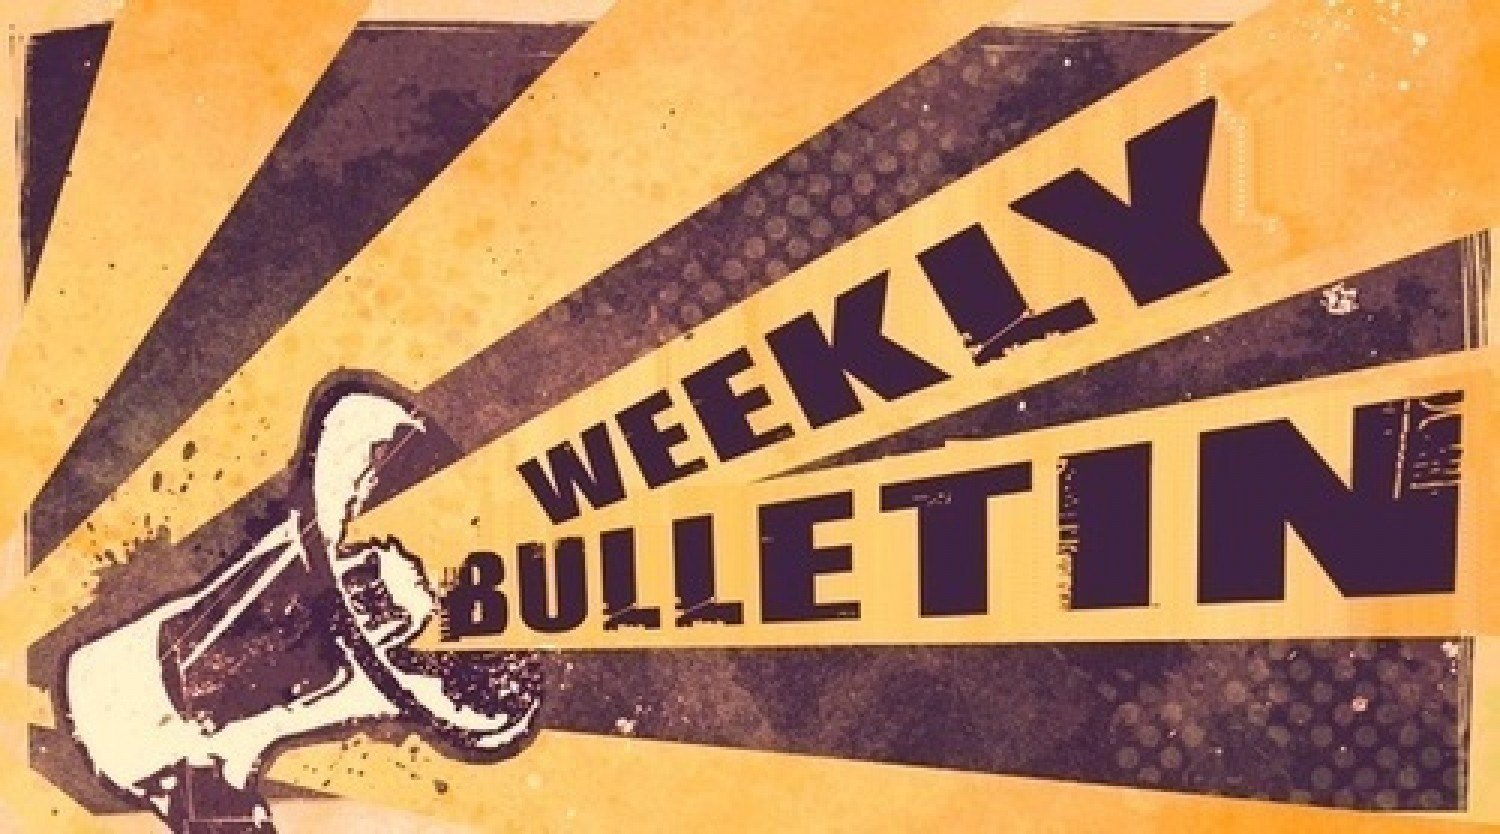 Weekly Bulletin February 15th